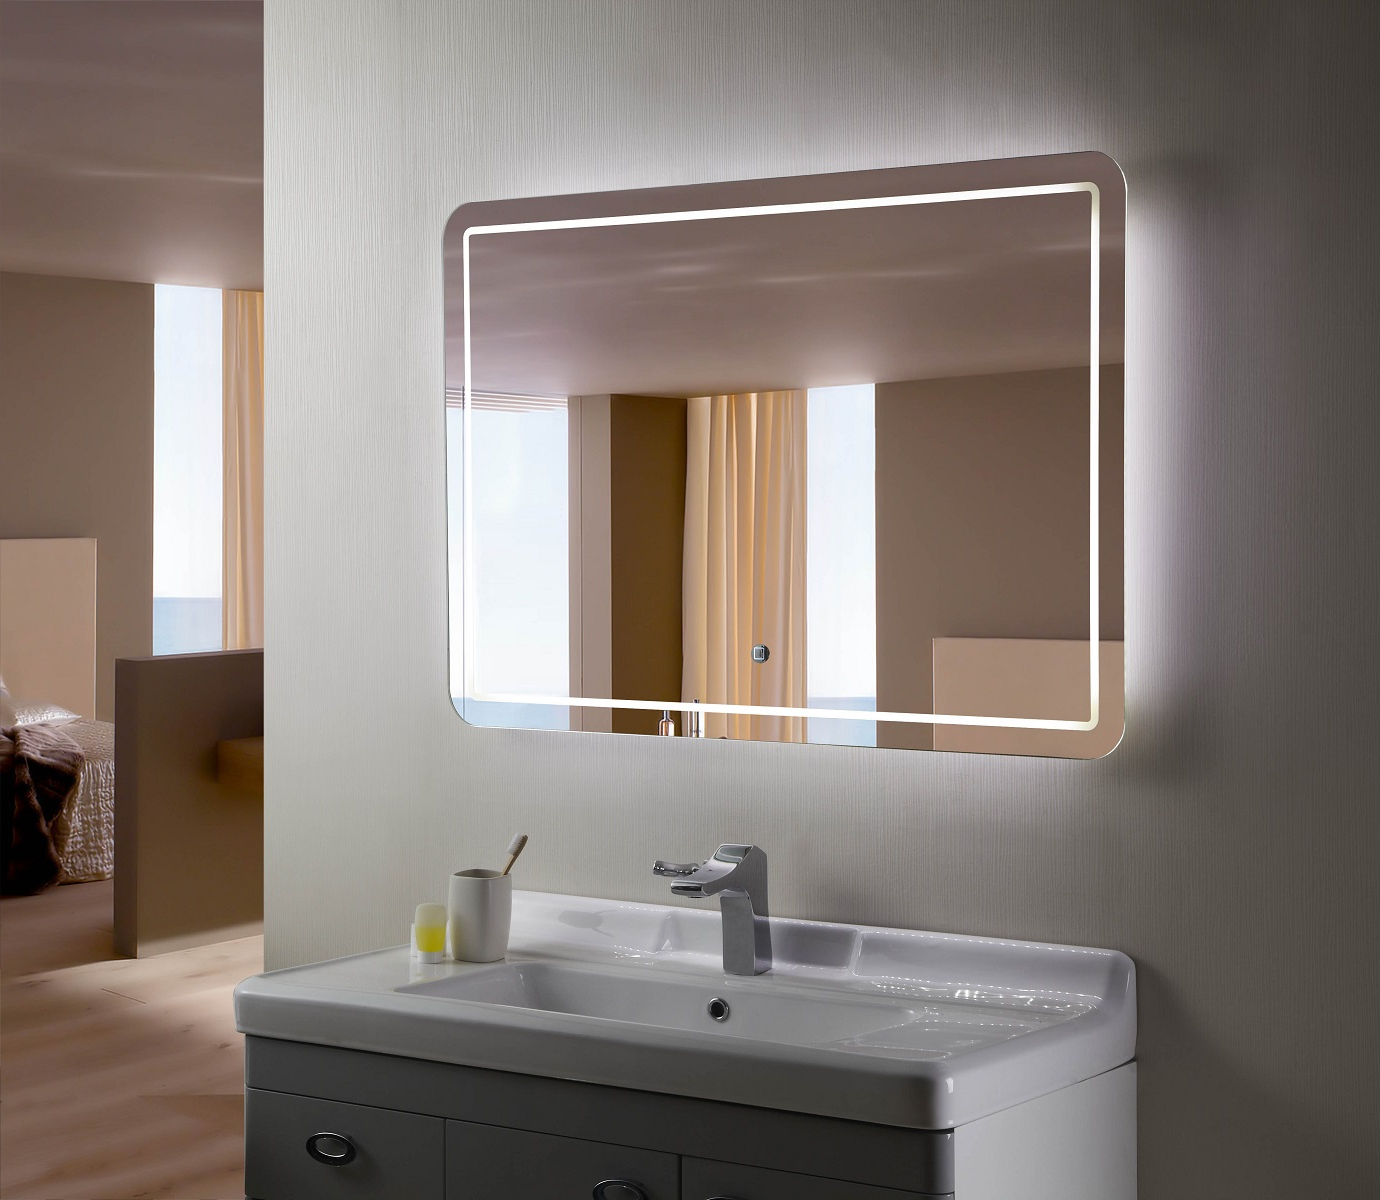 Bellagio Ii Backlit Mirror Led Bathroom Mirror Horizontal Within Well Known Backlit Wall Mirrors (View 7 of 20)